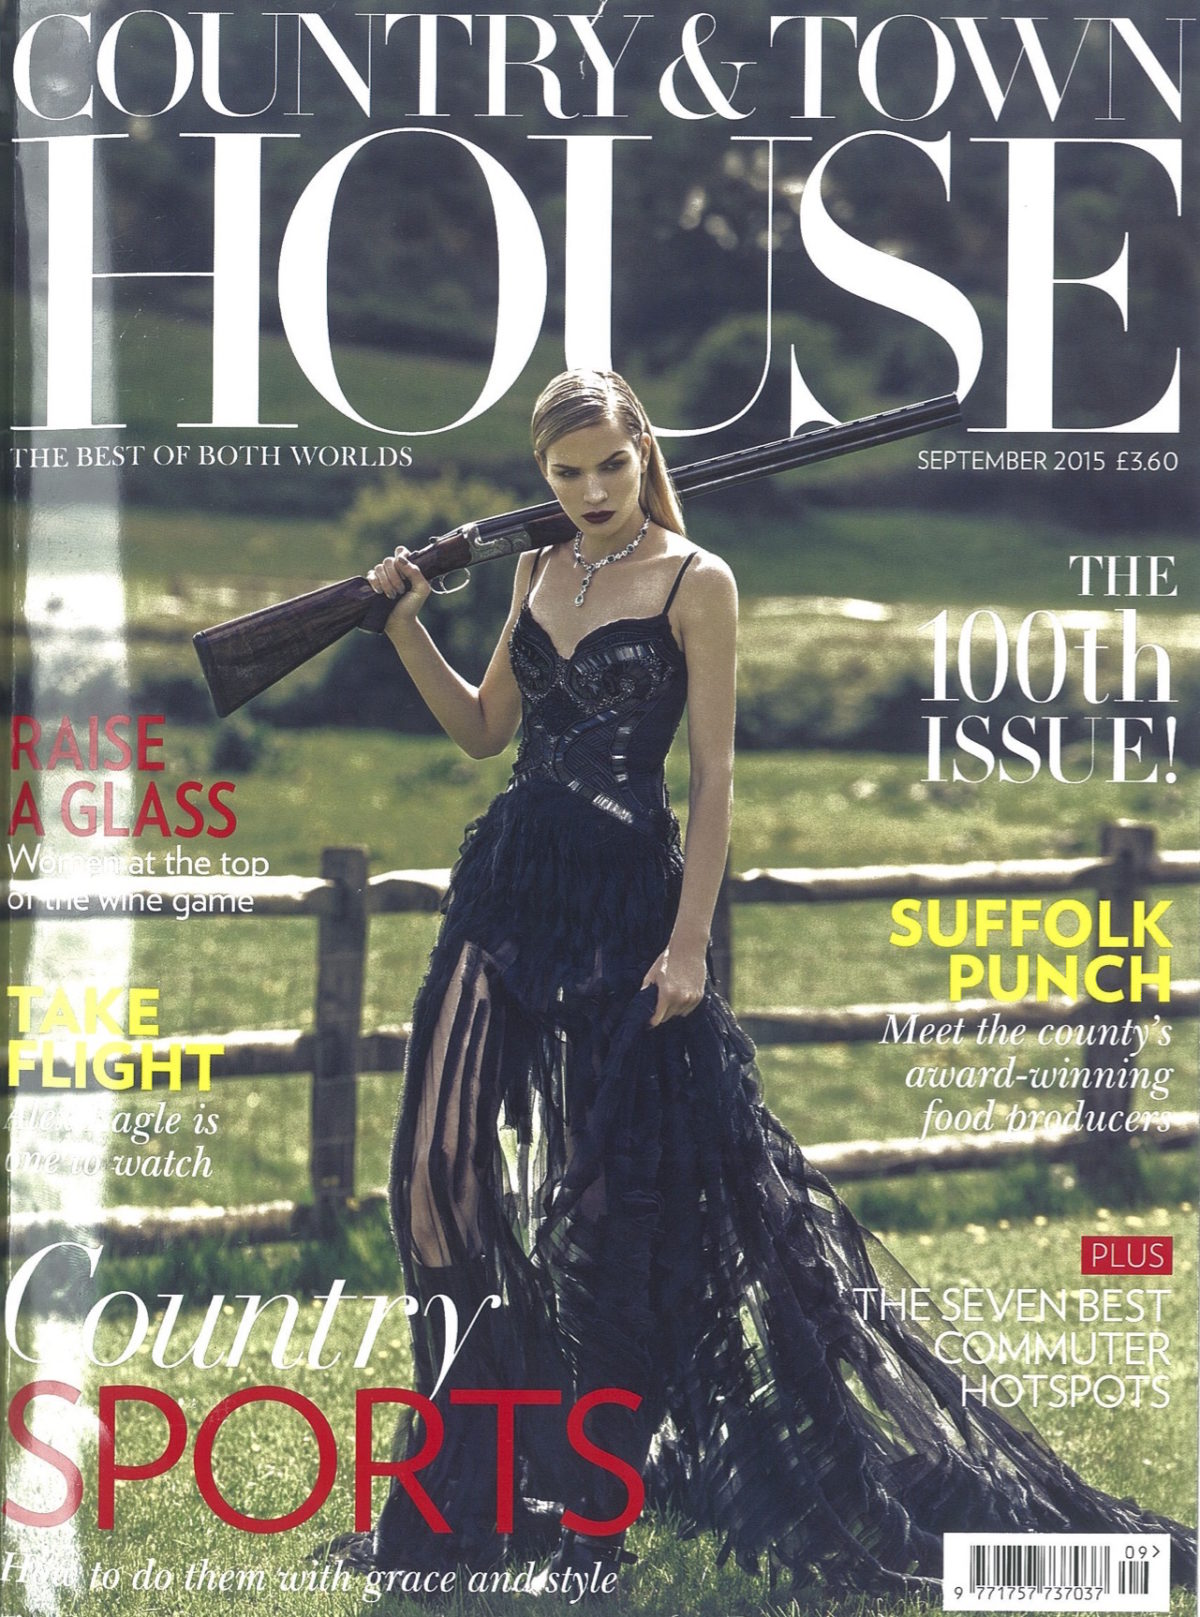 Country And Town House Cover Sept 2015